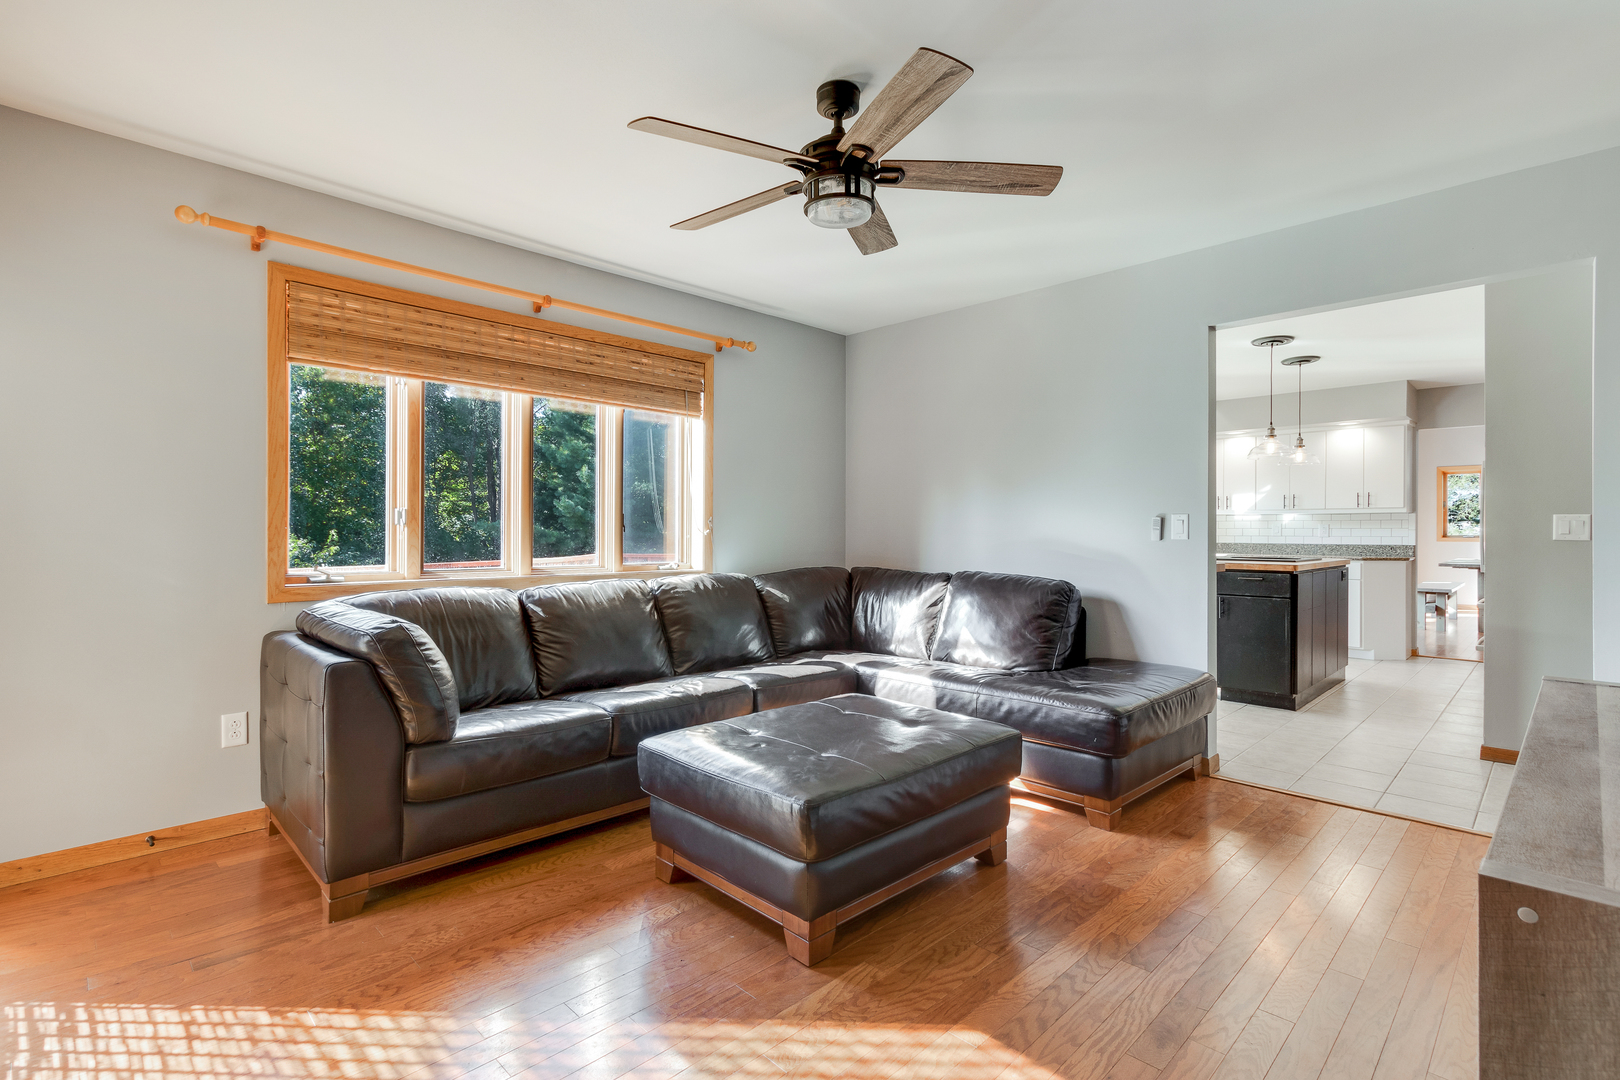 fort valley muslim single men View all fort valley, ga hud listings in your area all hud homes that are currently on the market can be found here on hudcom find hud properties below market value.